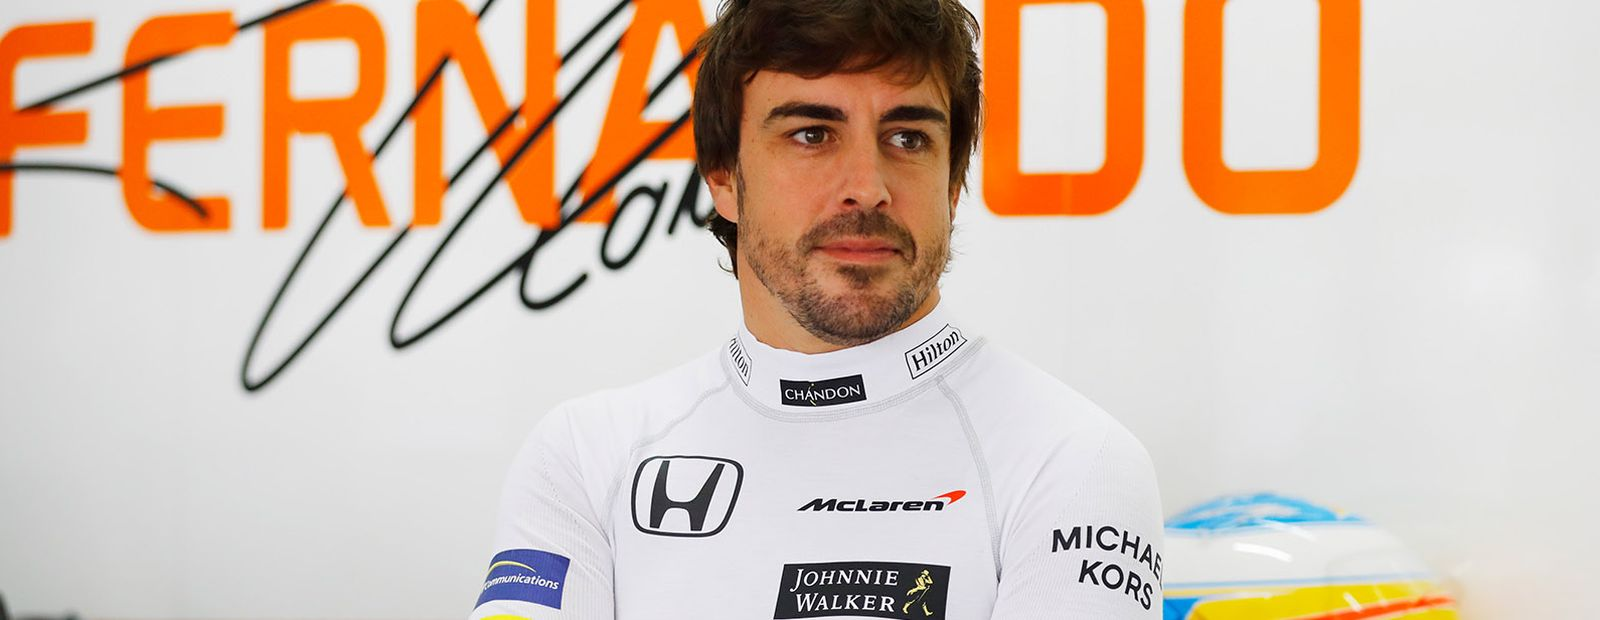 McLaren and Fernando Alonso extend relationship